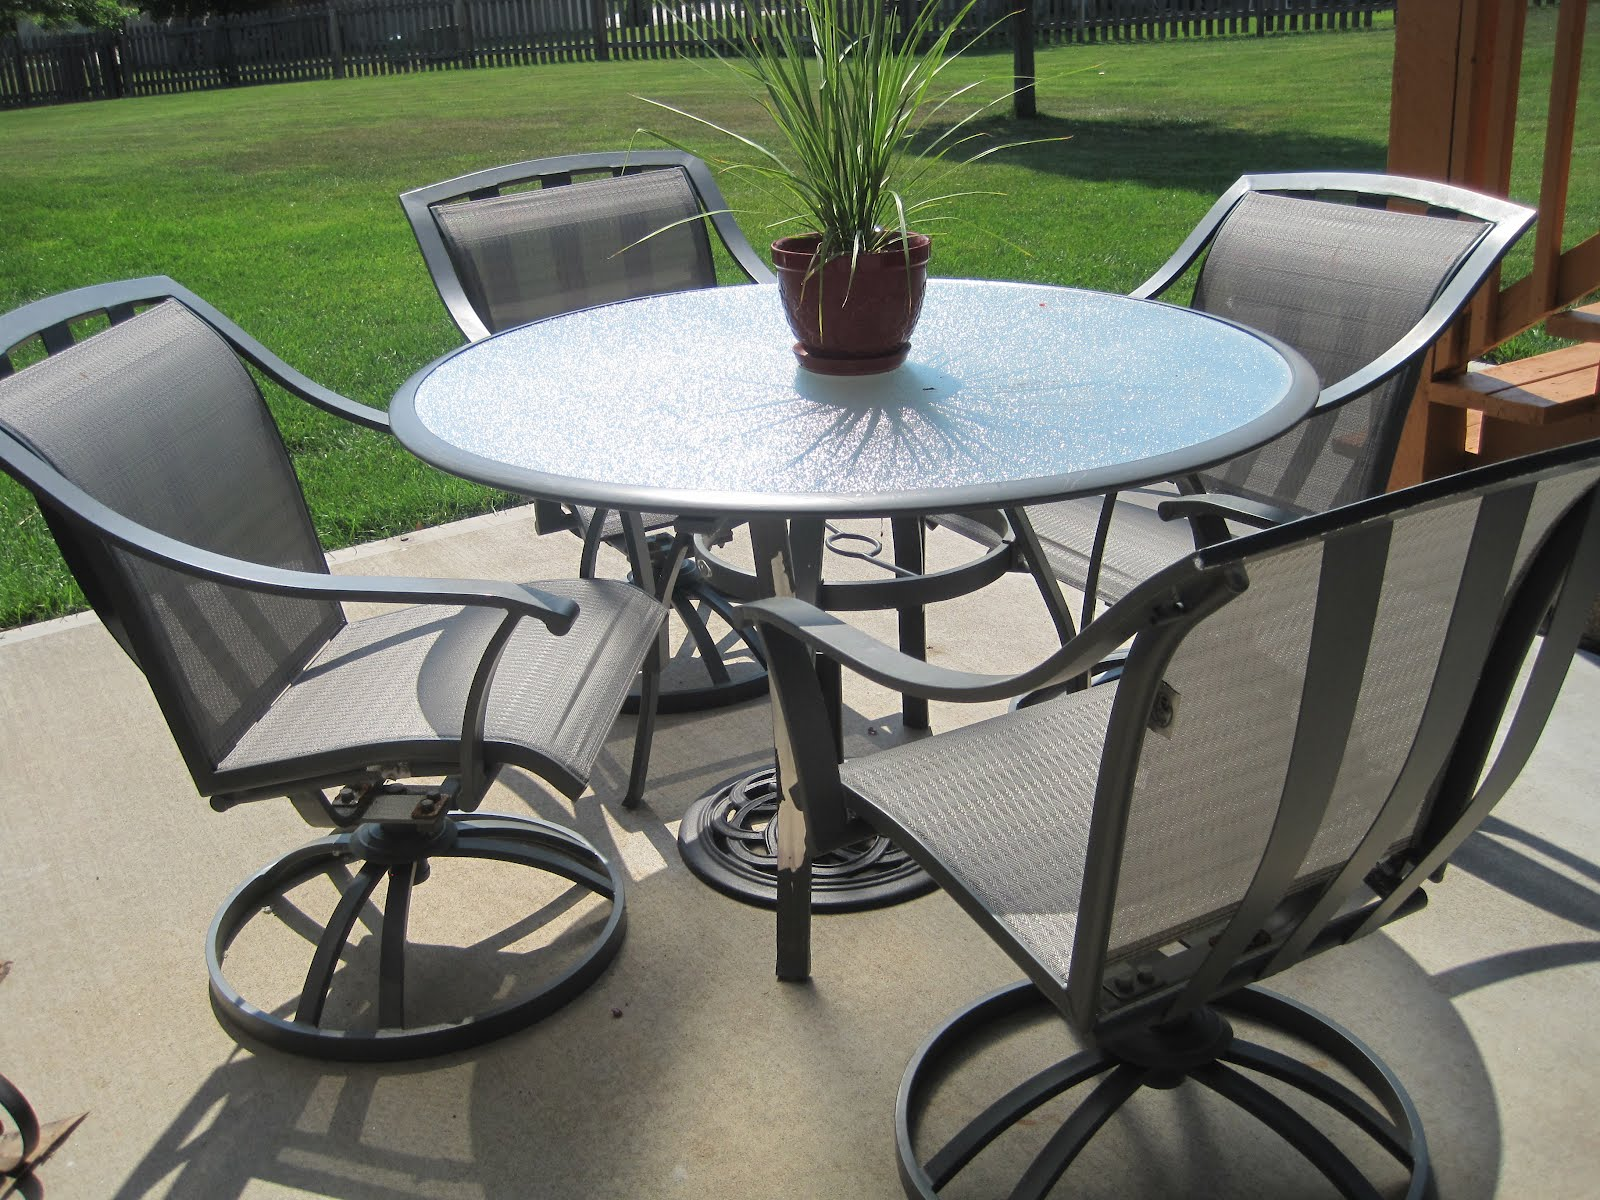 Guide purpose is to Hampton bay patio furniture - Patio Furniture For Excellent Home